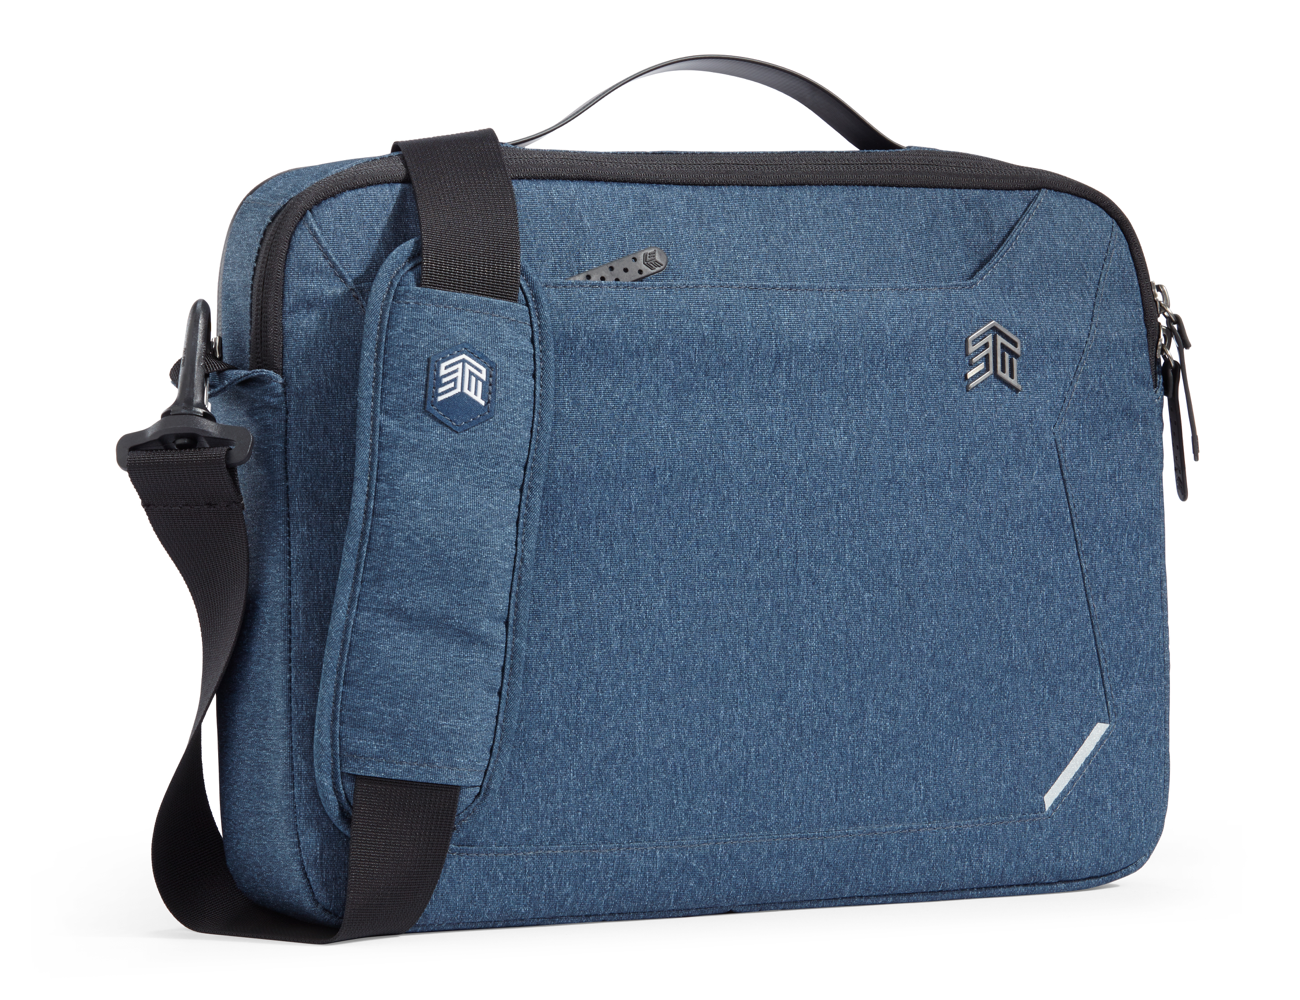 STM Myth Brief bag